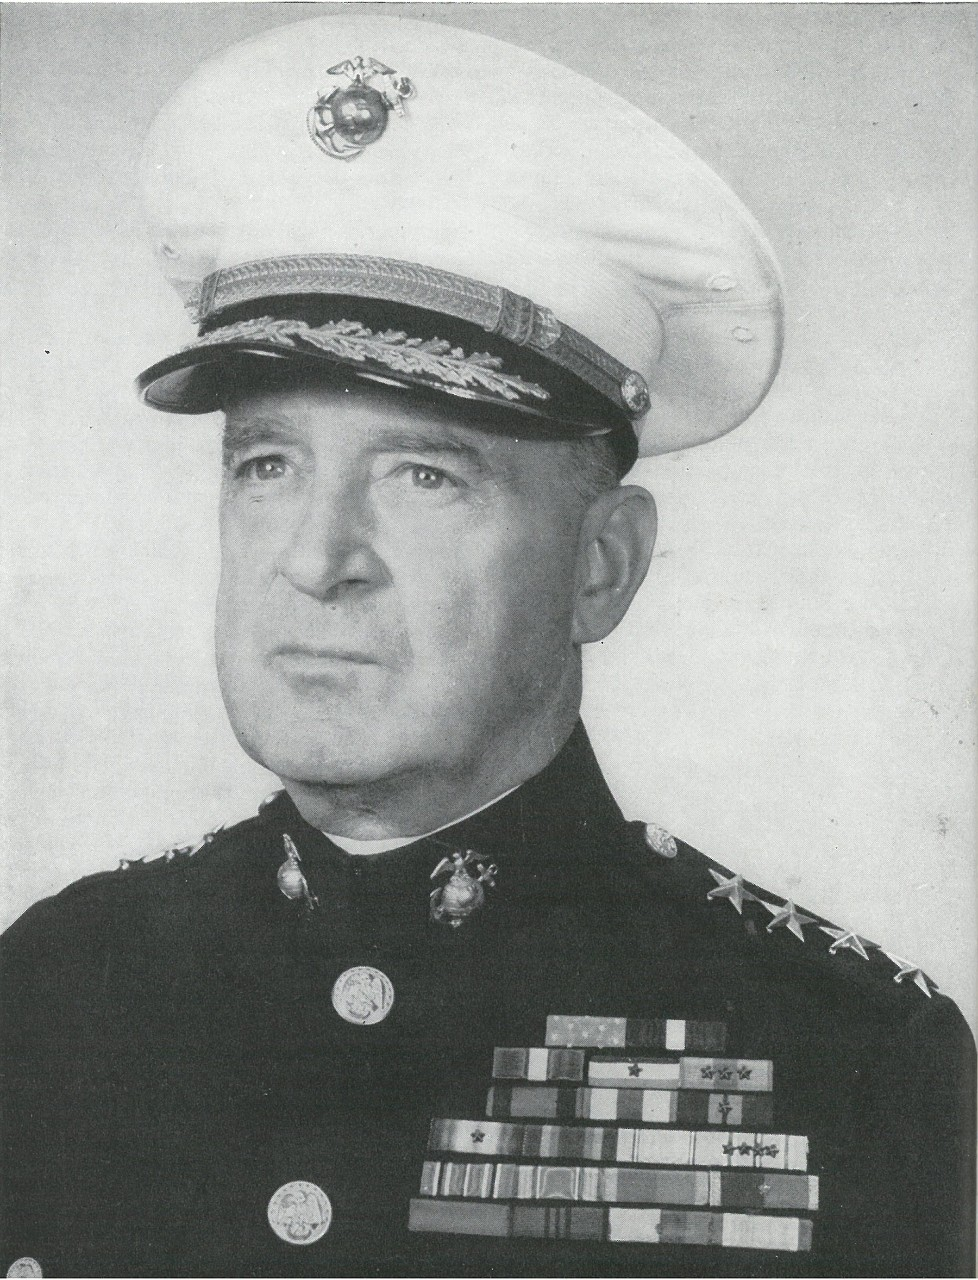 GEN A. A. VANDEGRIFT, eighteenth Commandant of the Marine Corps, who led Marines to victory on Guadalcanal as commander of the 1st Marine Division (reinforced).